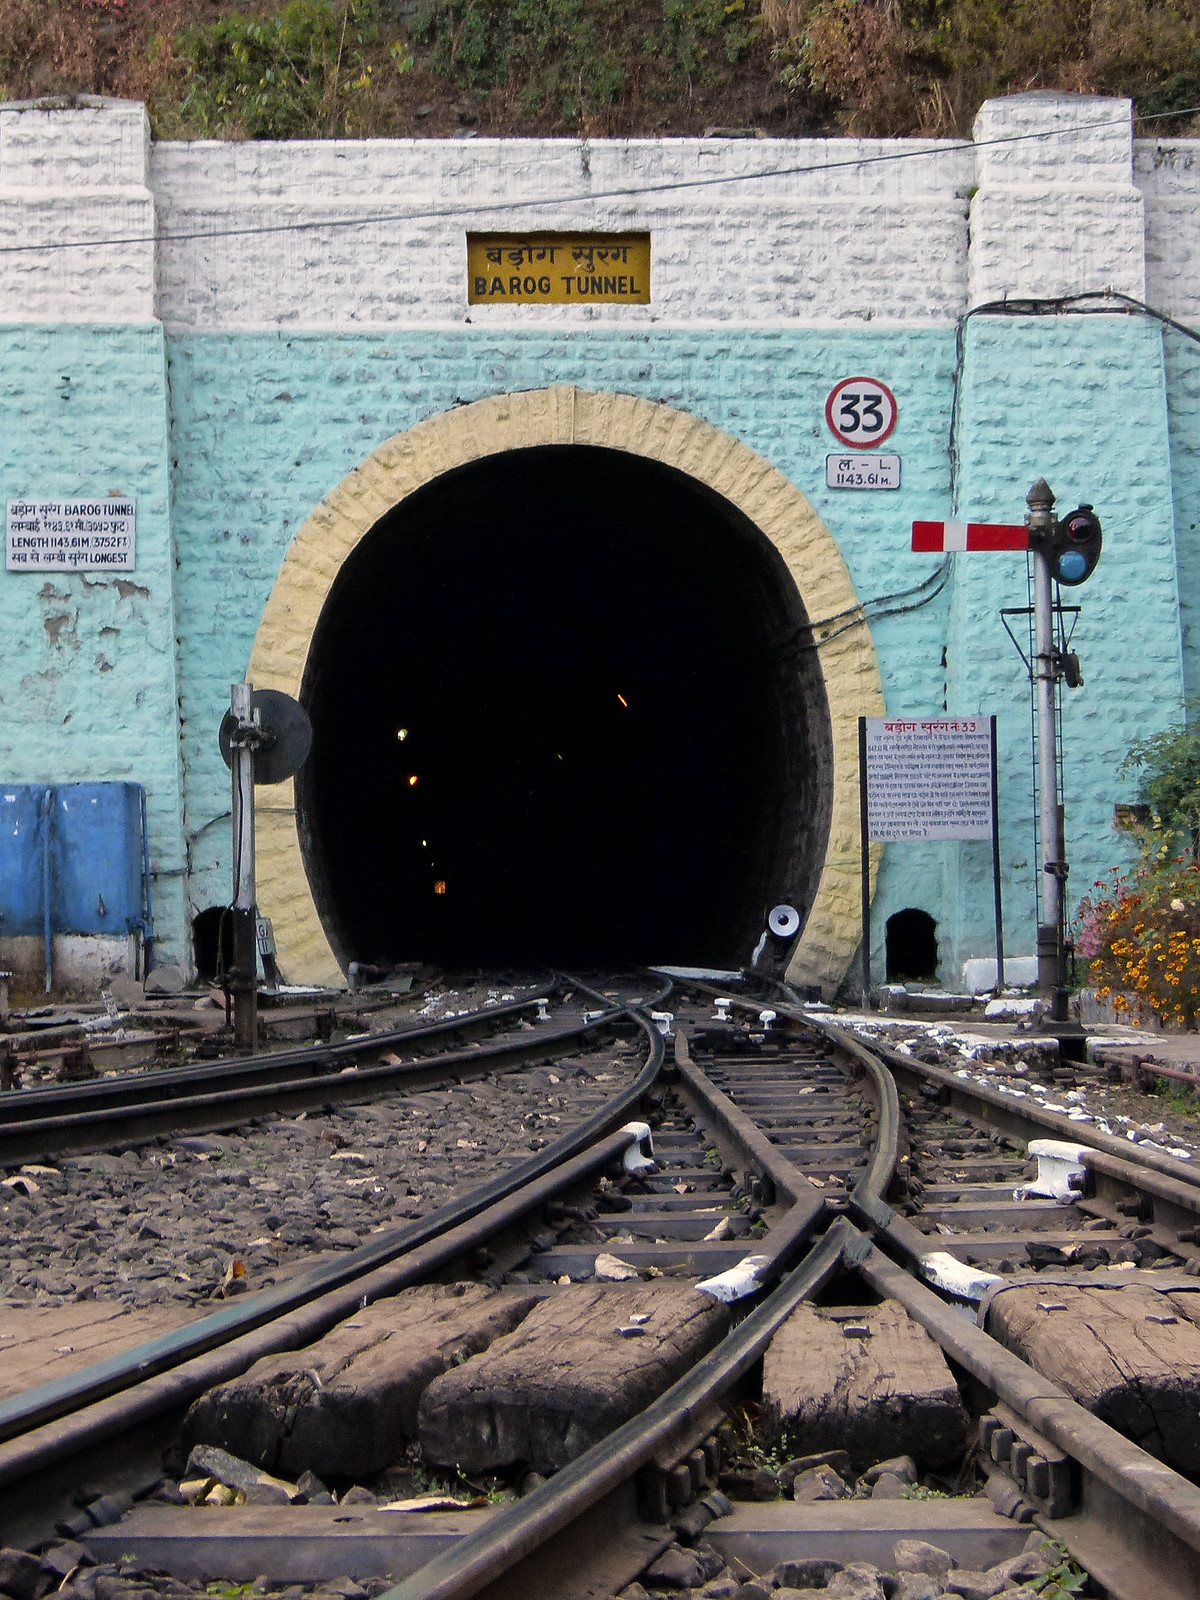 Barog Tunnel or Tunnel No. 33, Shimla